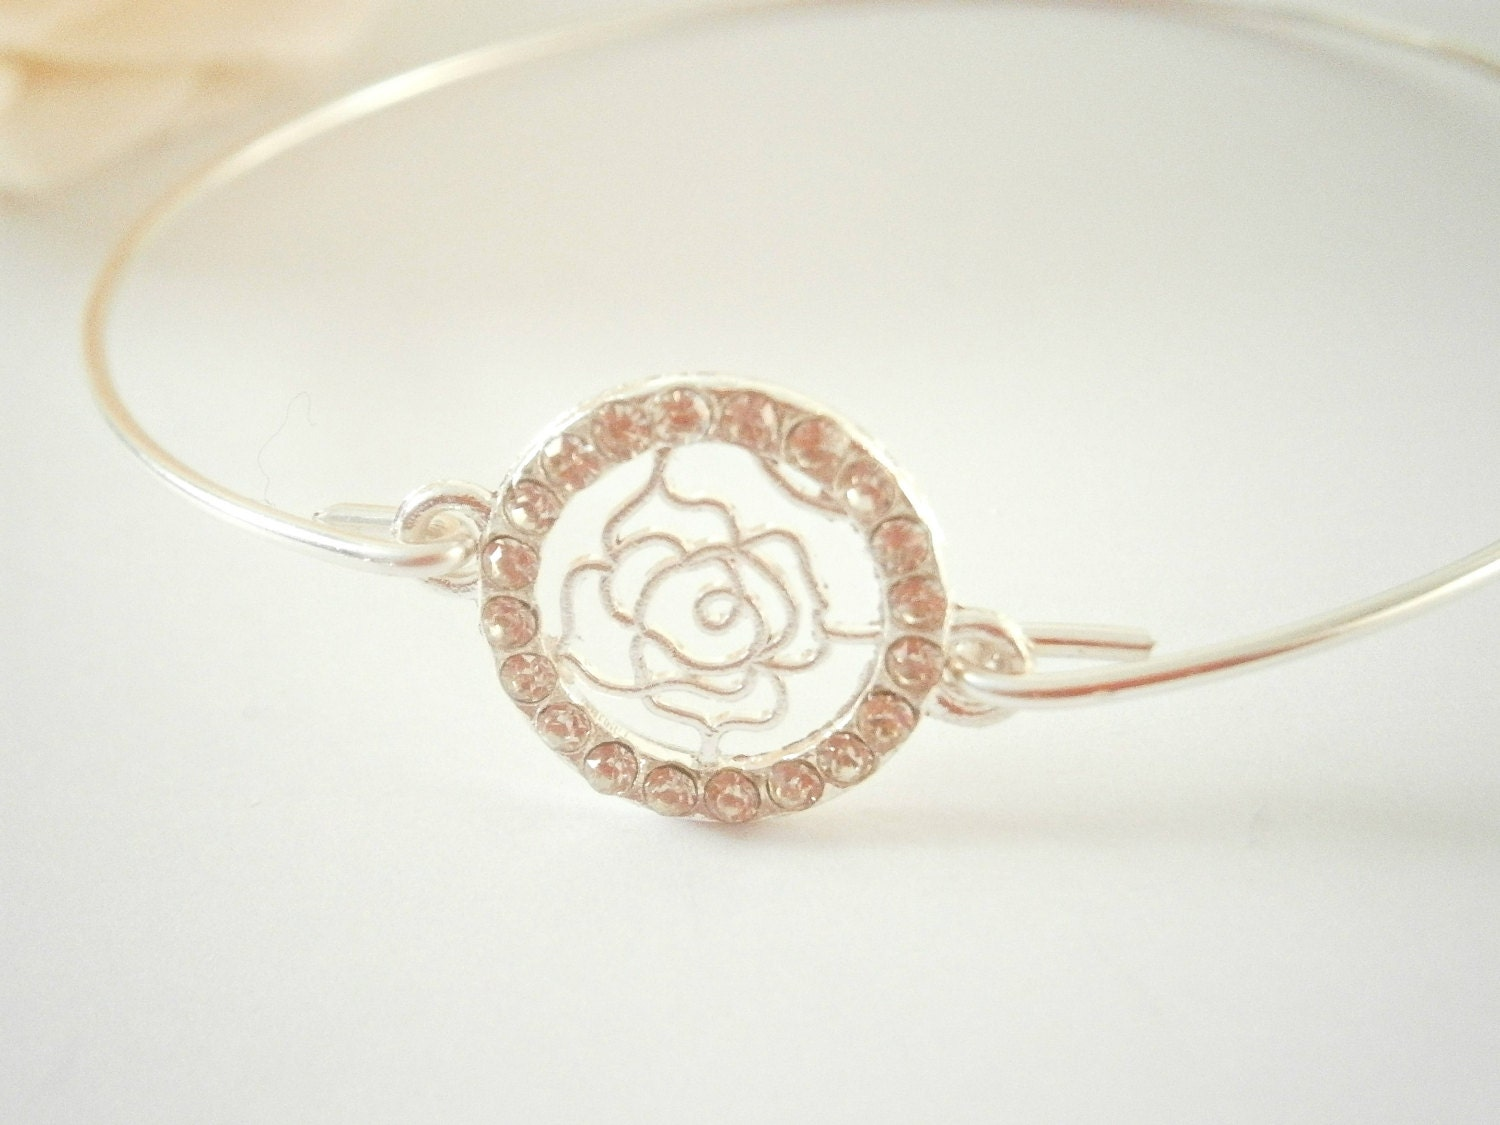 Rose Bangle Bracelet - Silver Wire Bangles - Stacking Bracelets ...